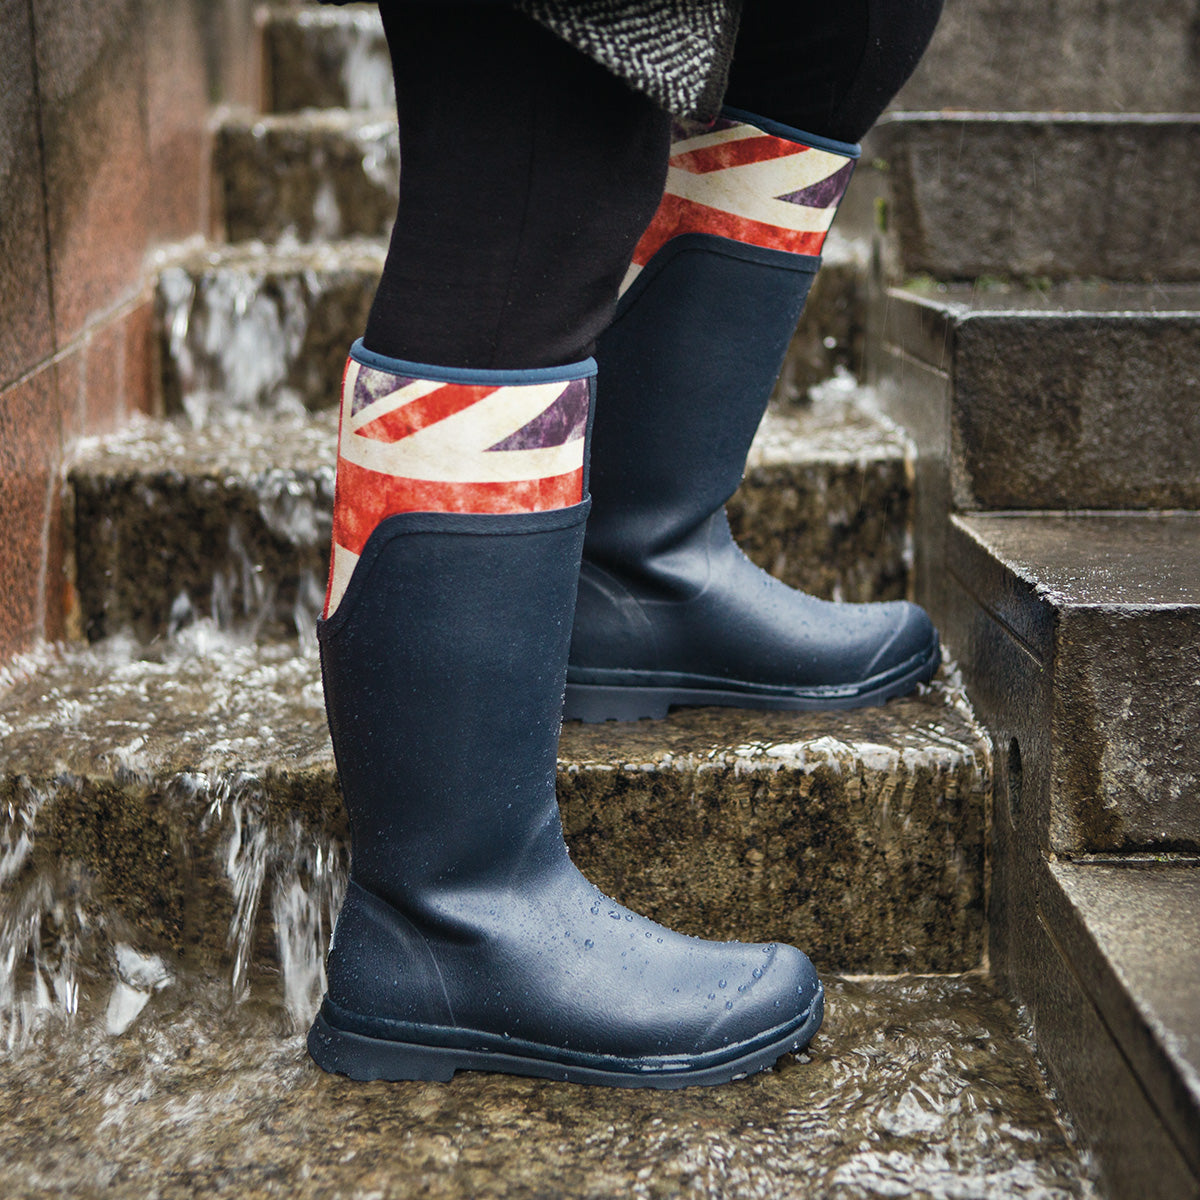 Breezy Stiefeletten für Damen | The Original Muck Boot